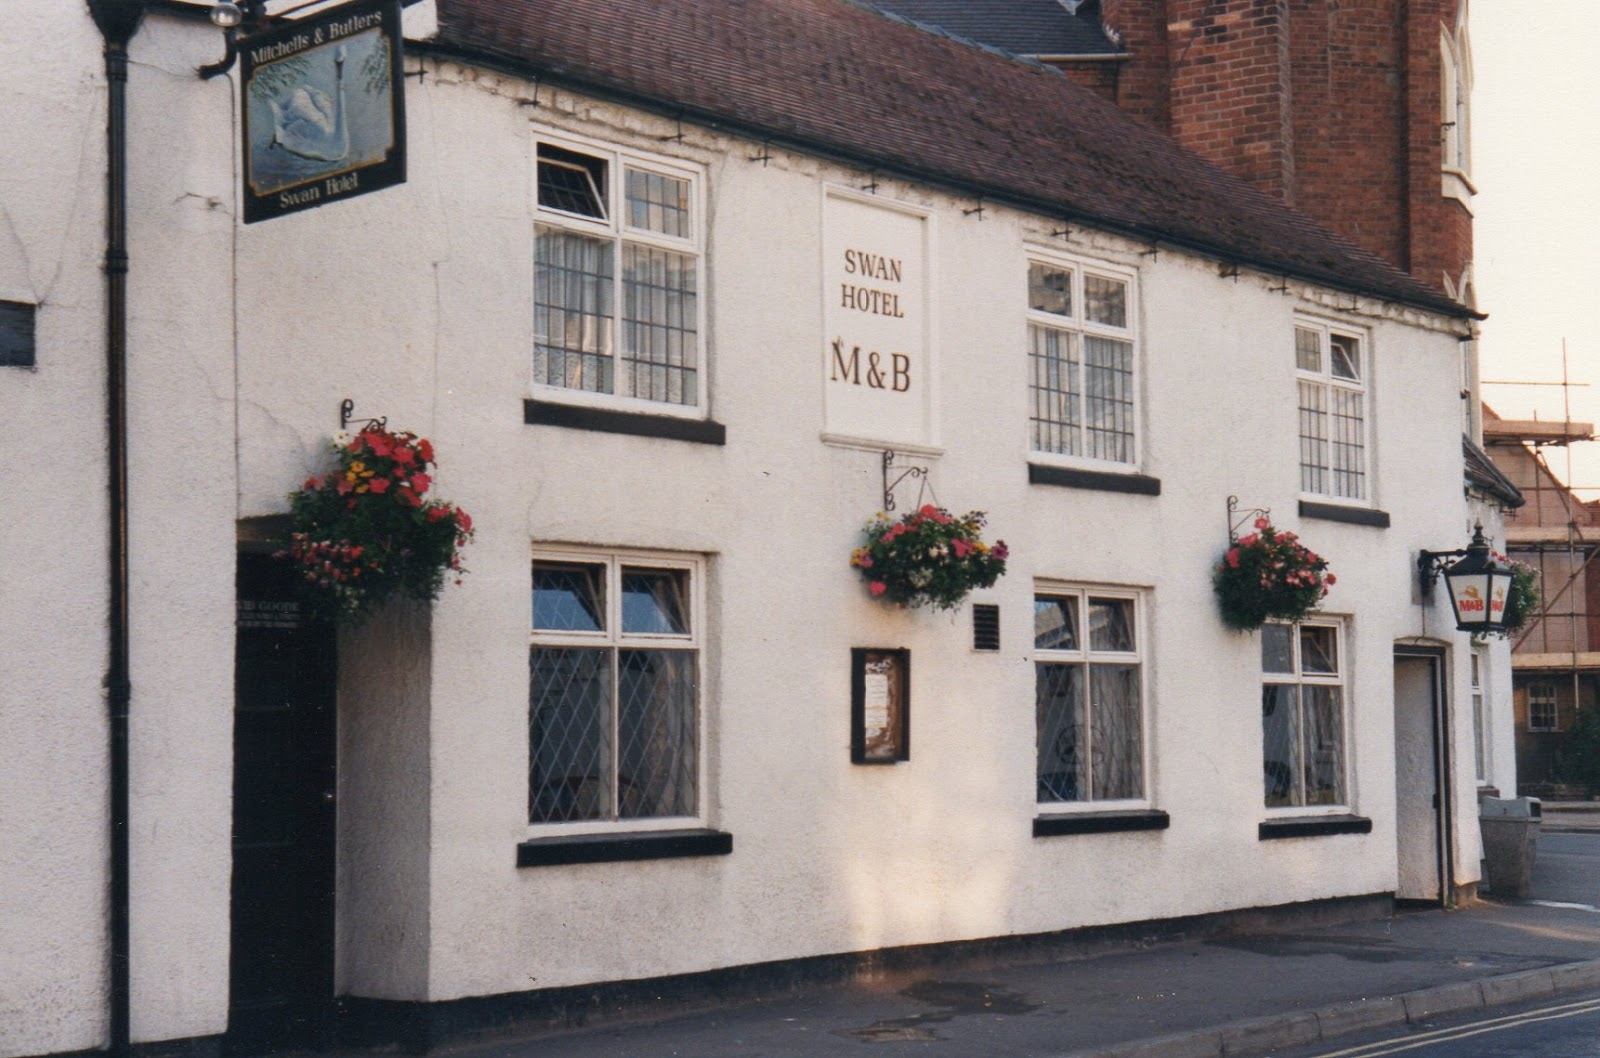 Pubs: Then & Now: #262 Swan Hotel, Brewood, Staffordshire